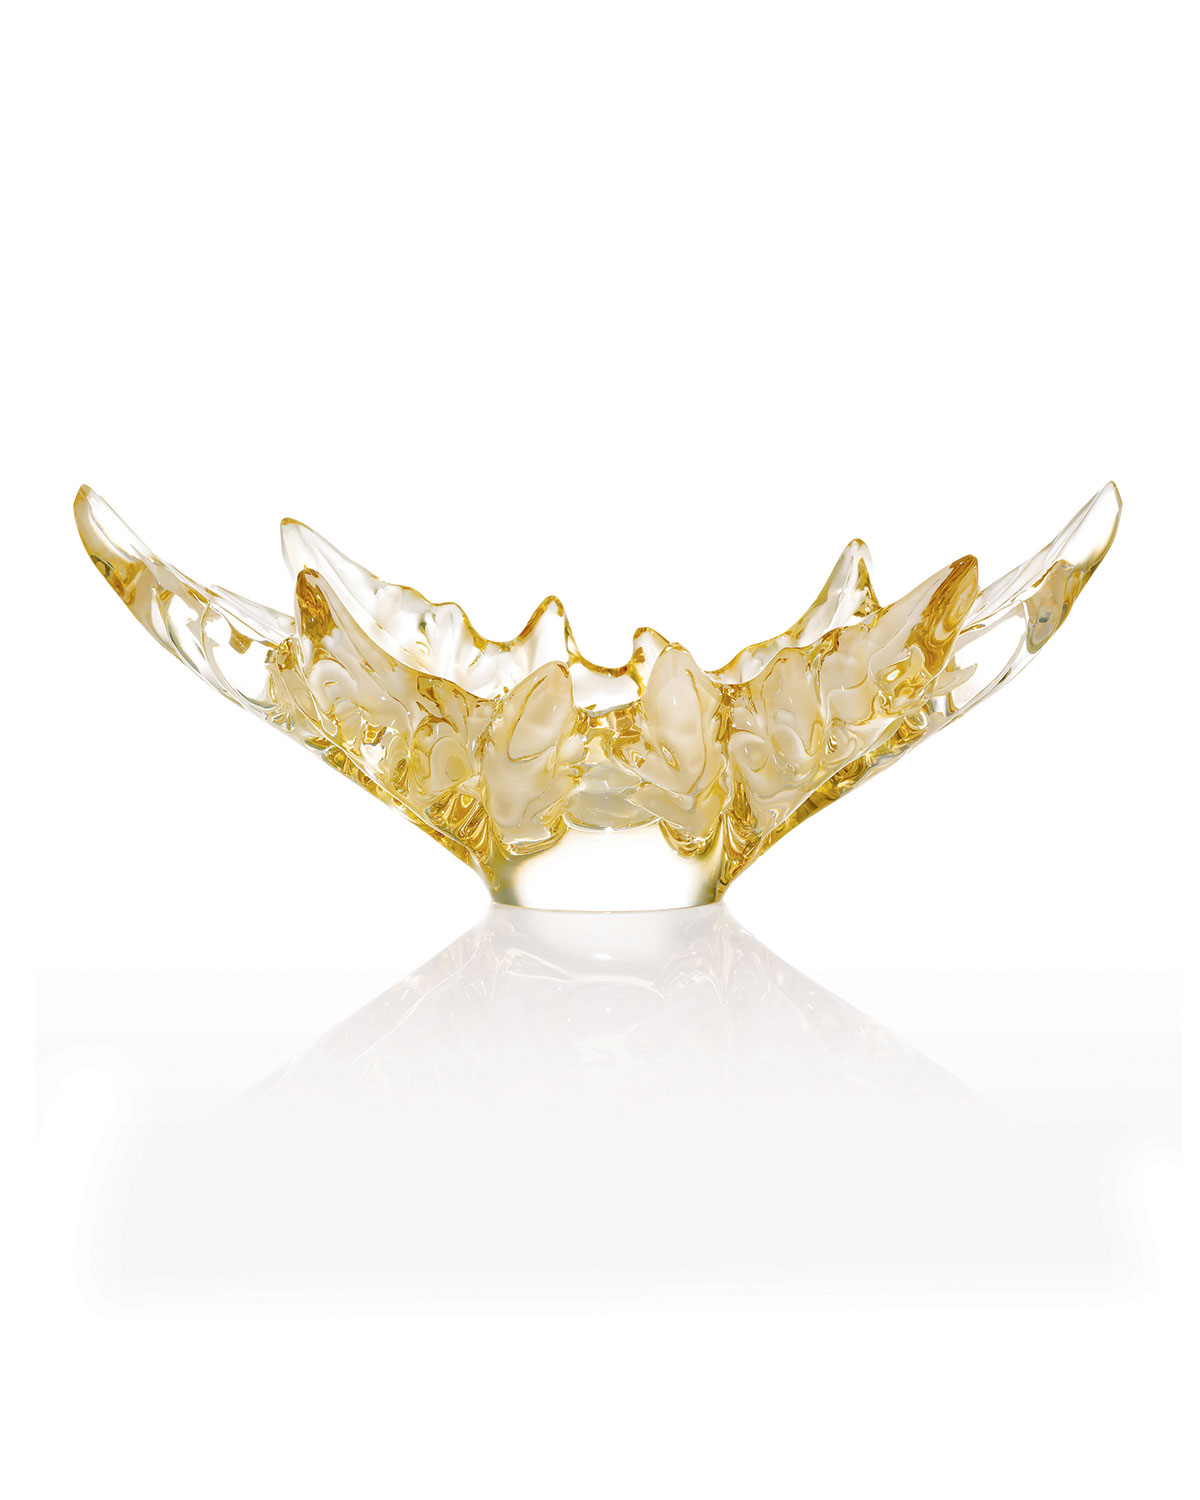 Lalique CHAMPS-ELYSEES BOWL - GOLD LUSTRE